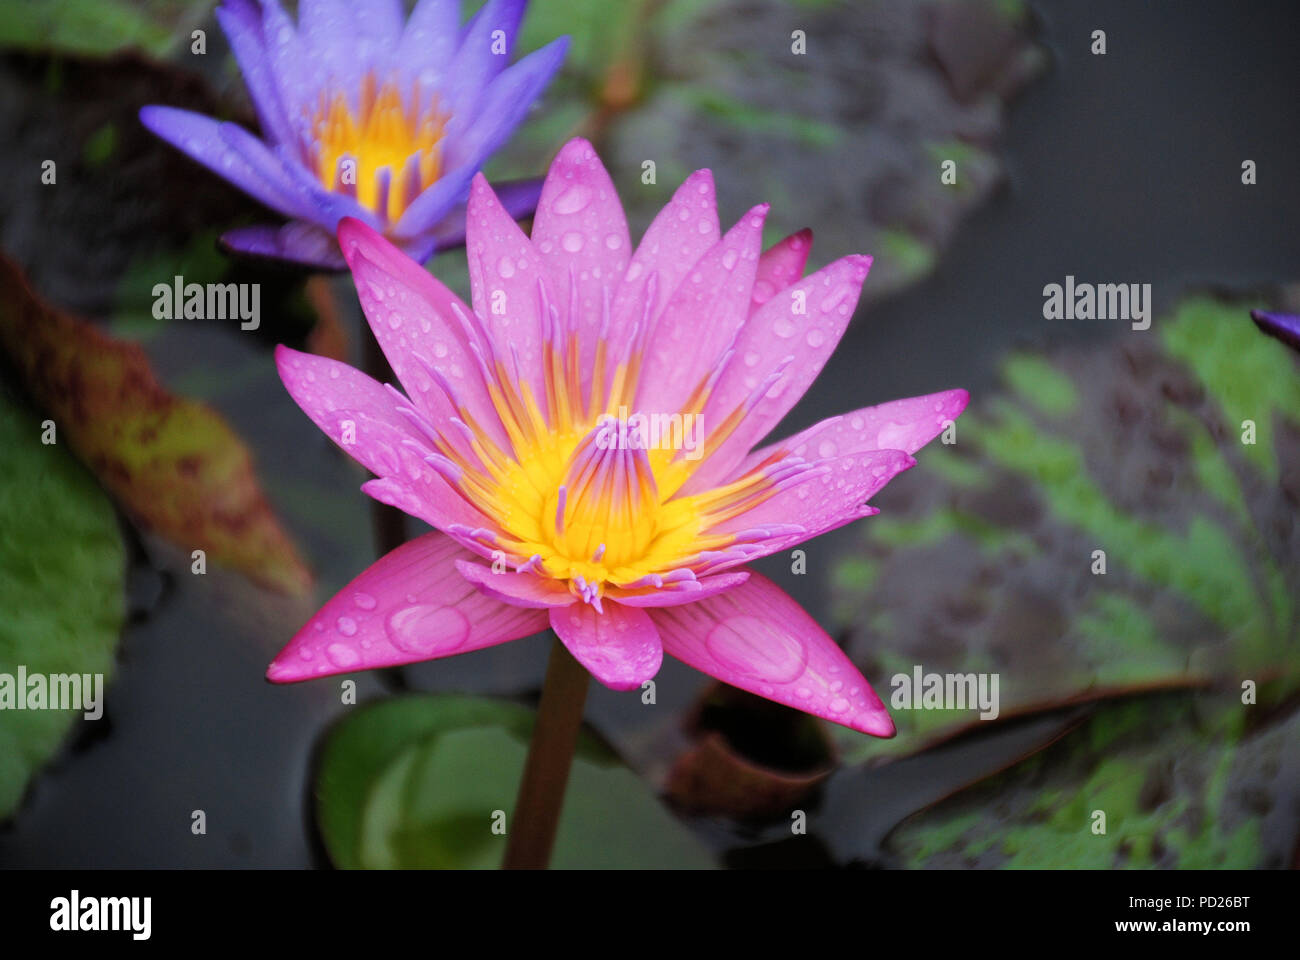 Water lily flower in village stock photos water lily flower in a pink panama pacific water lily or lotus flower in a pond in the izmirmasajfo